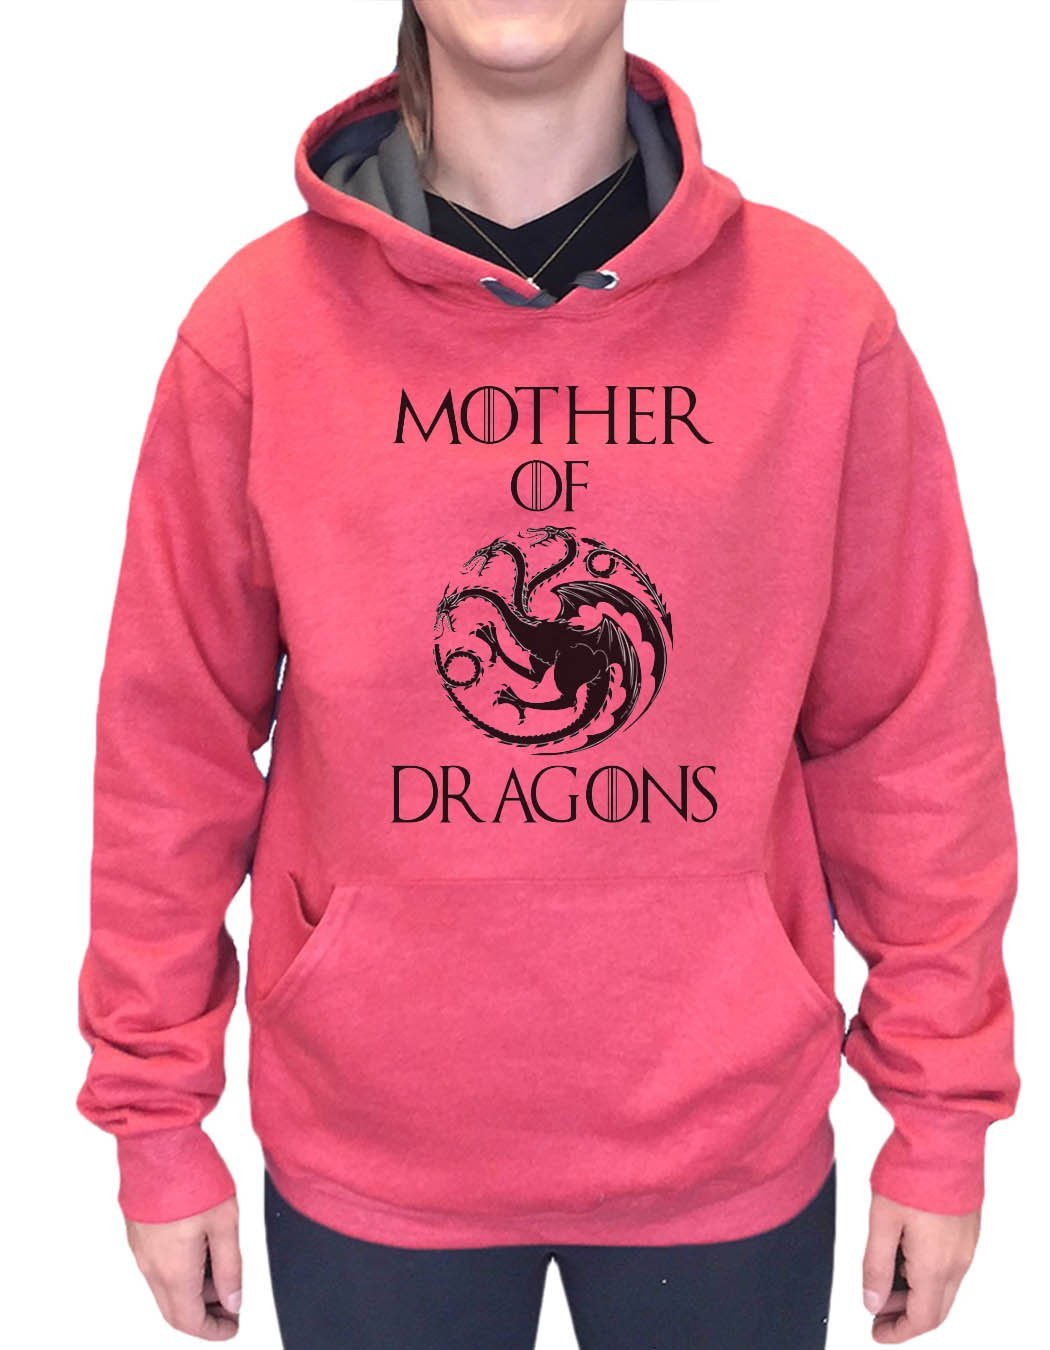 UNISEX HOODIE - Mother Of Dragons - FUNNY MENS AND WOMENS HOODED SWEATSHIRTS - 2775 Funny Shirt Small / Cranberry Red